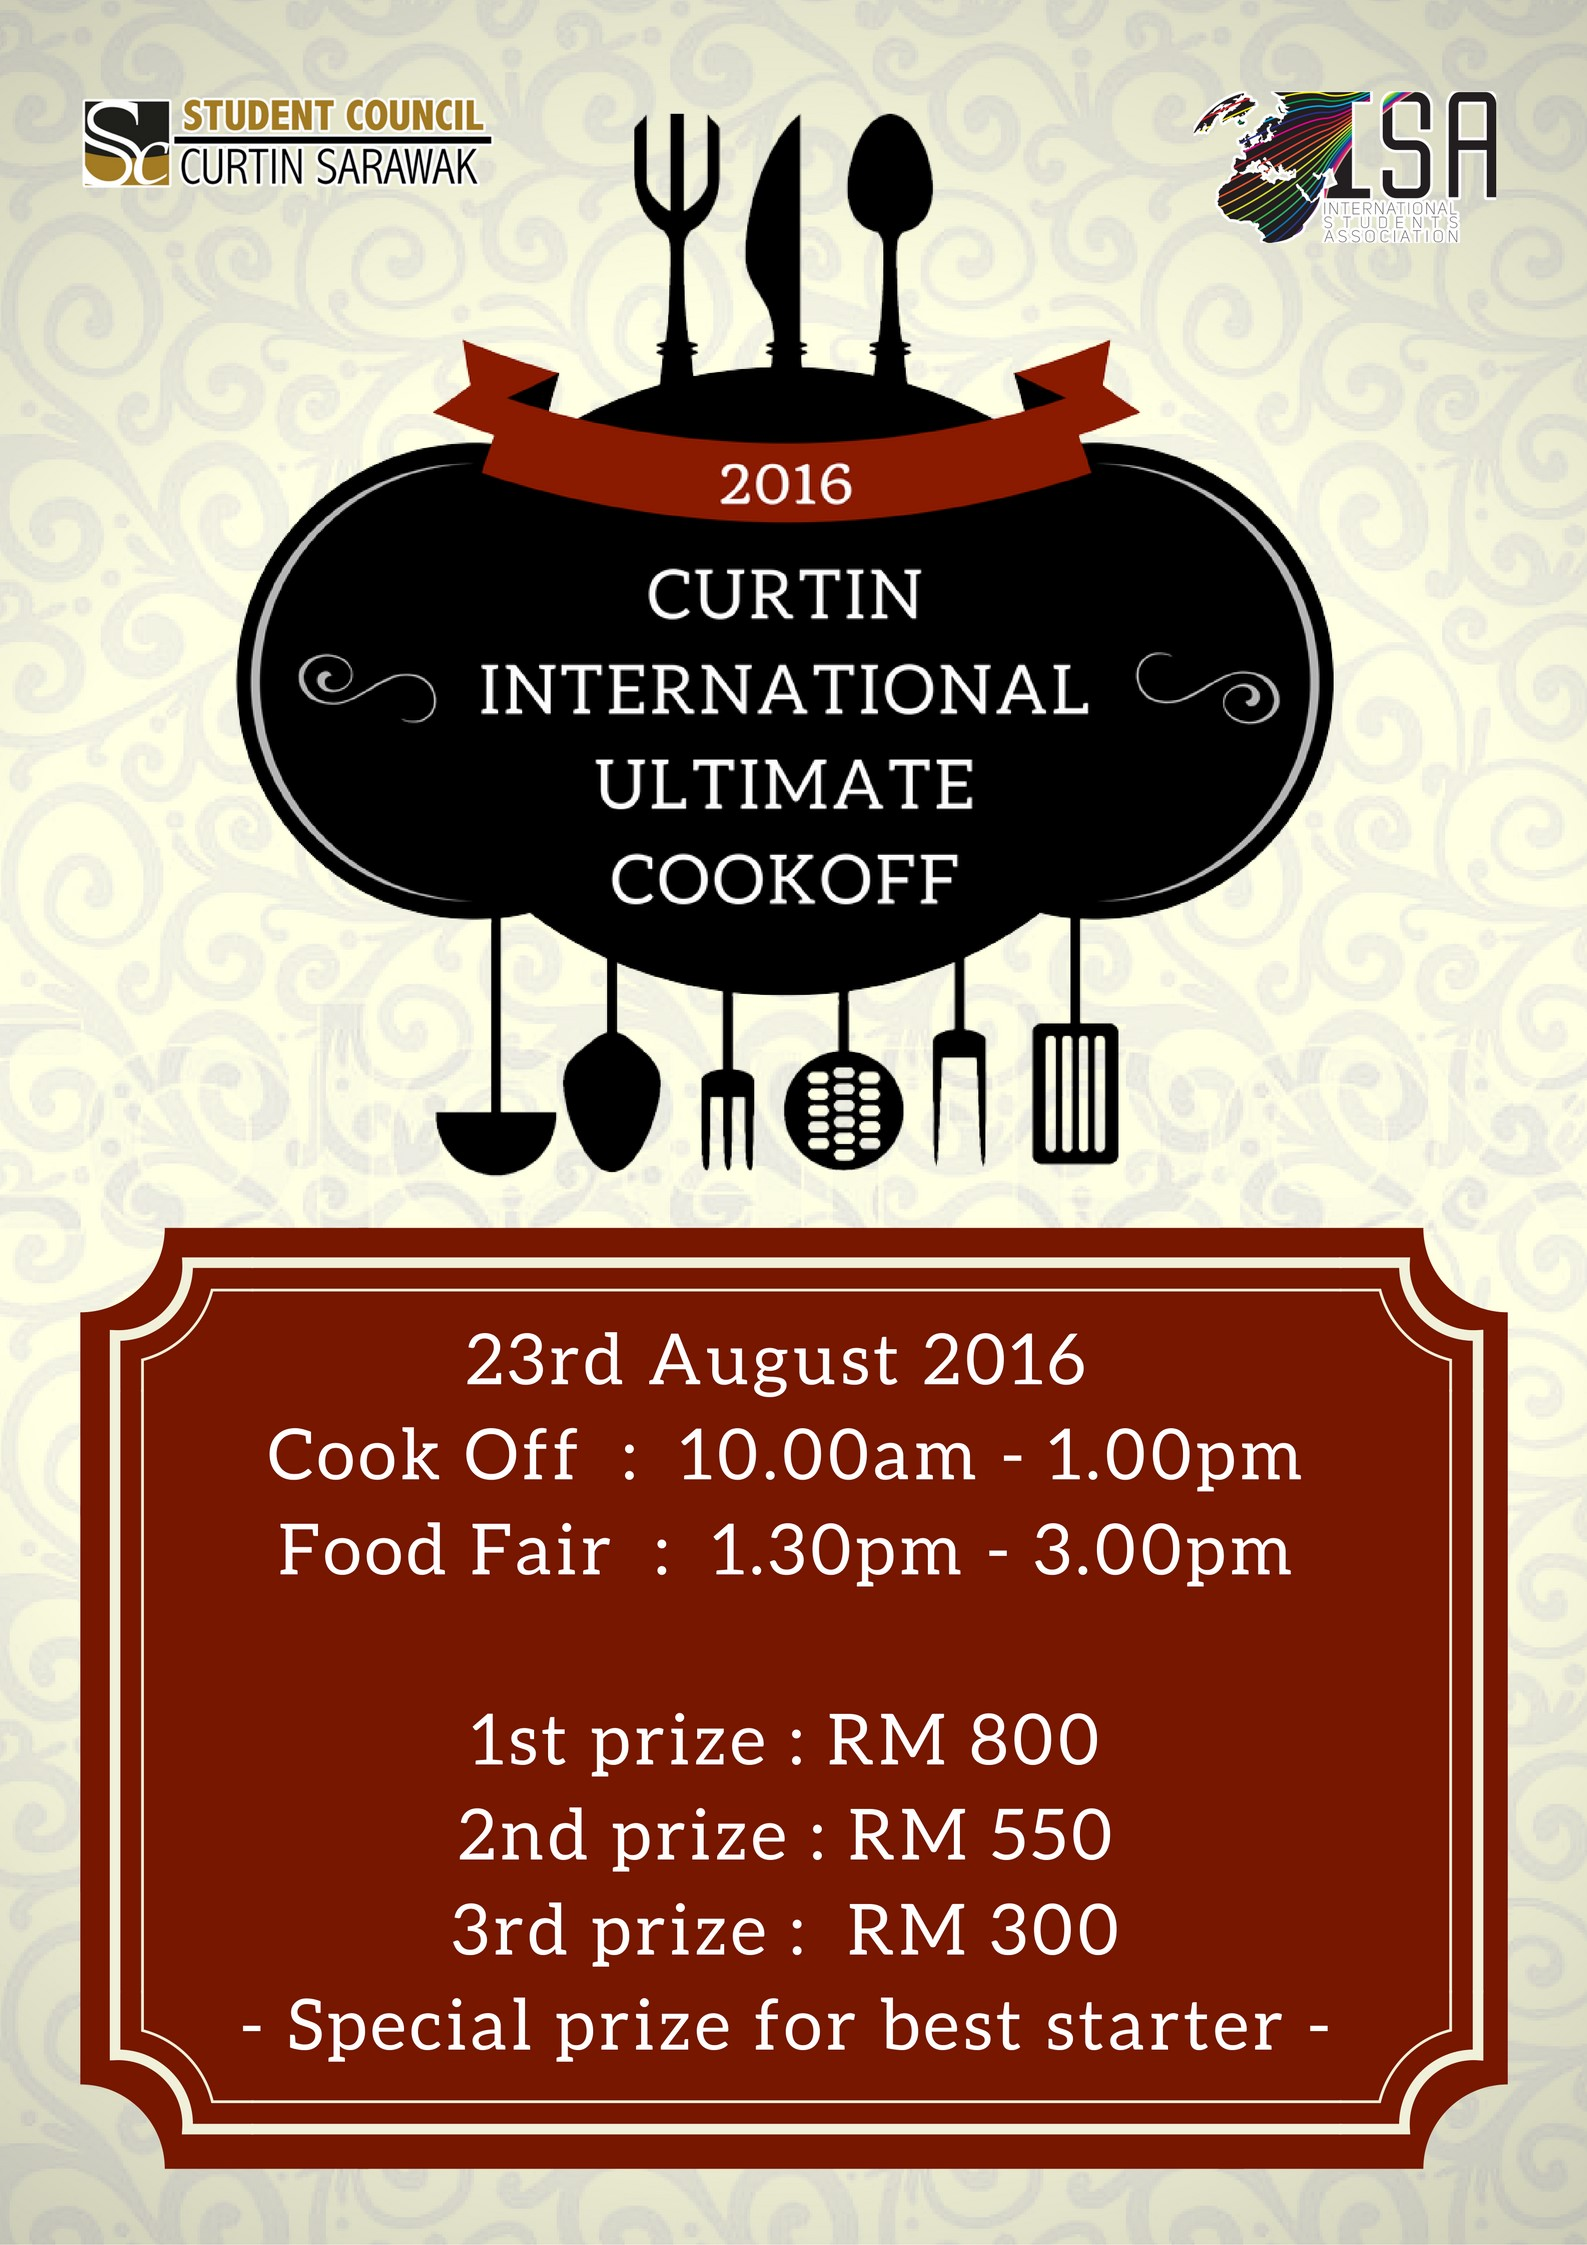 Curtin International Ultimate Cook Off 2016